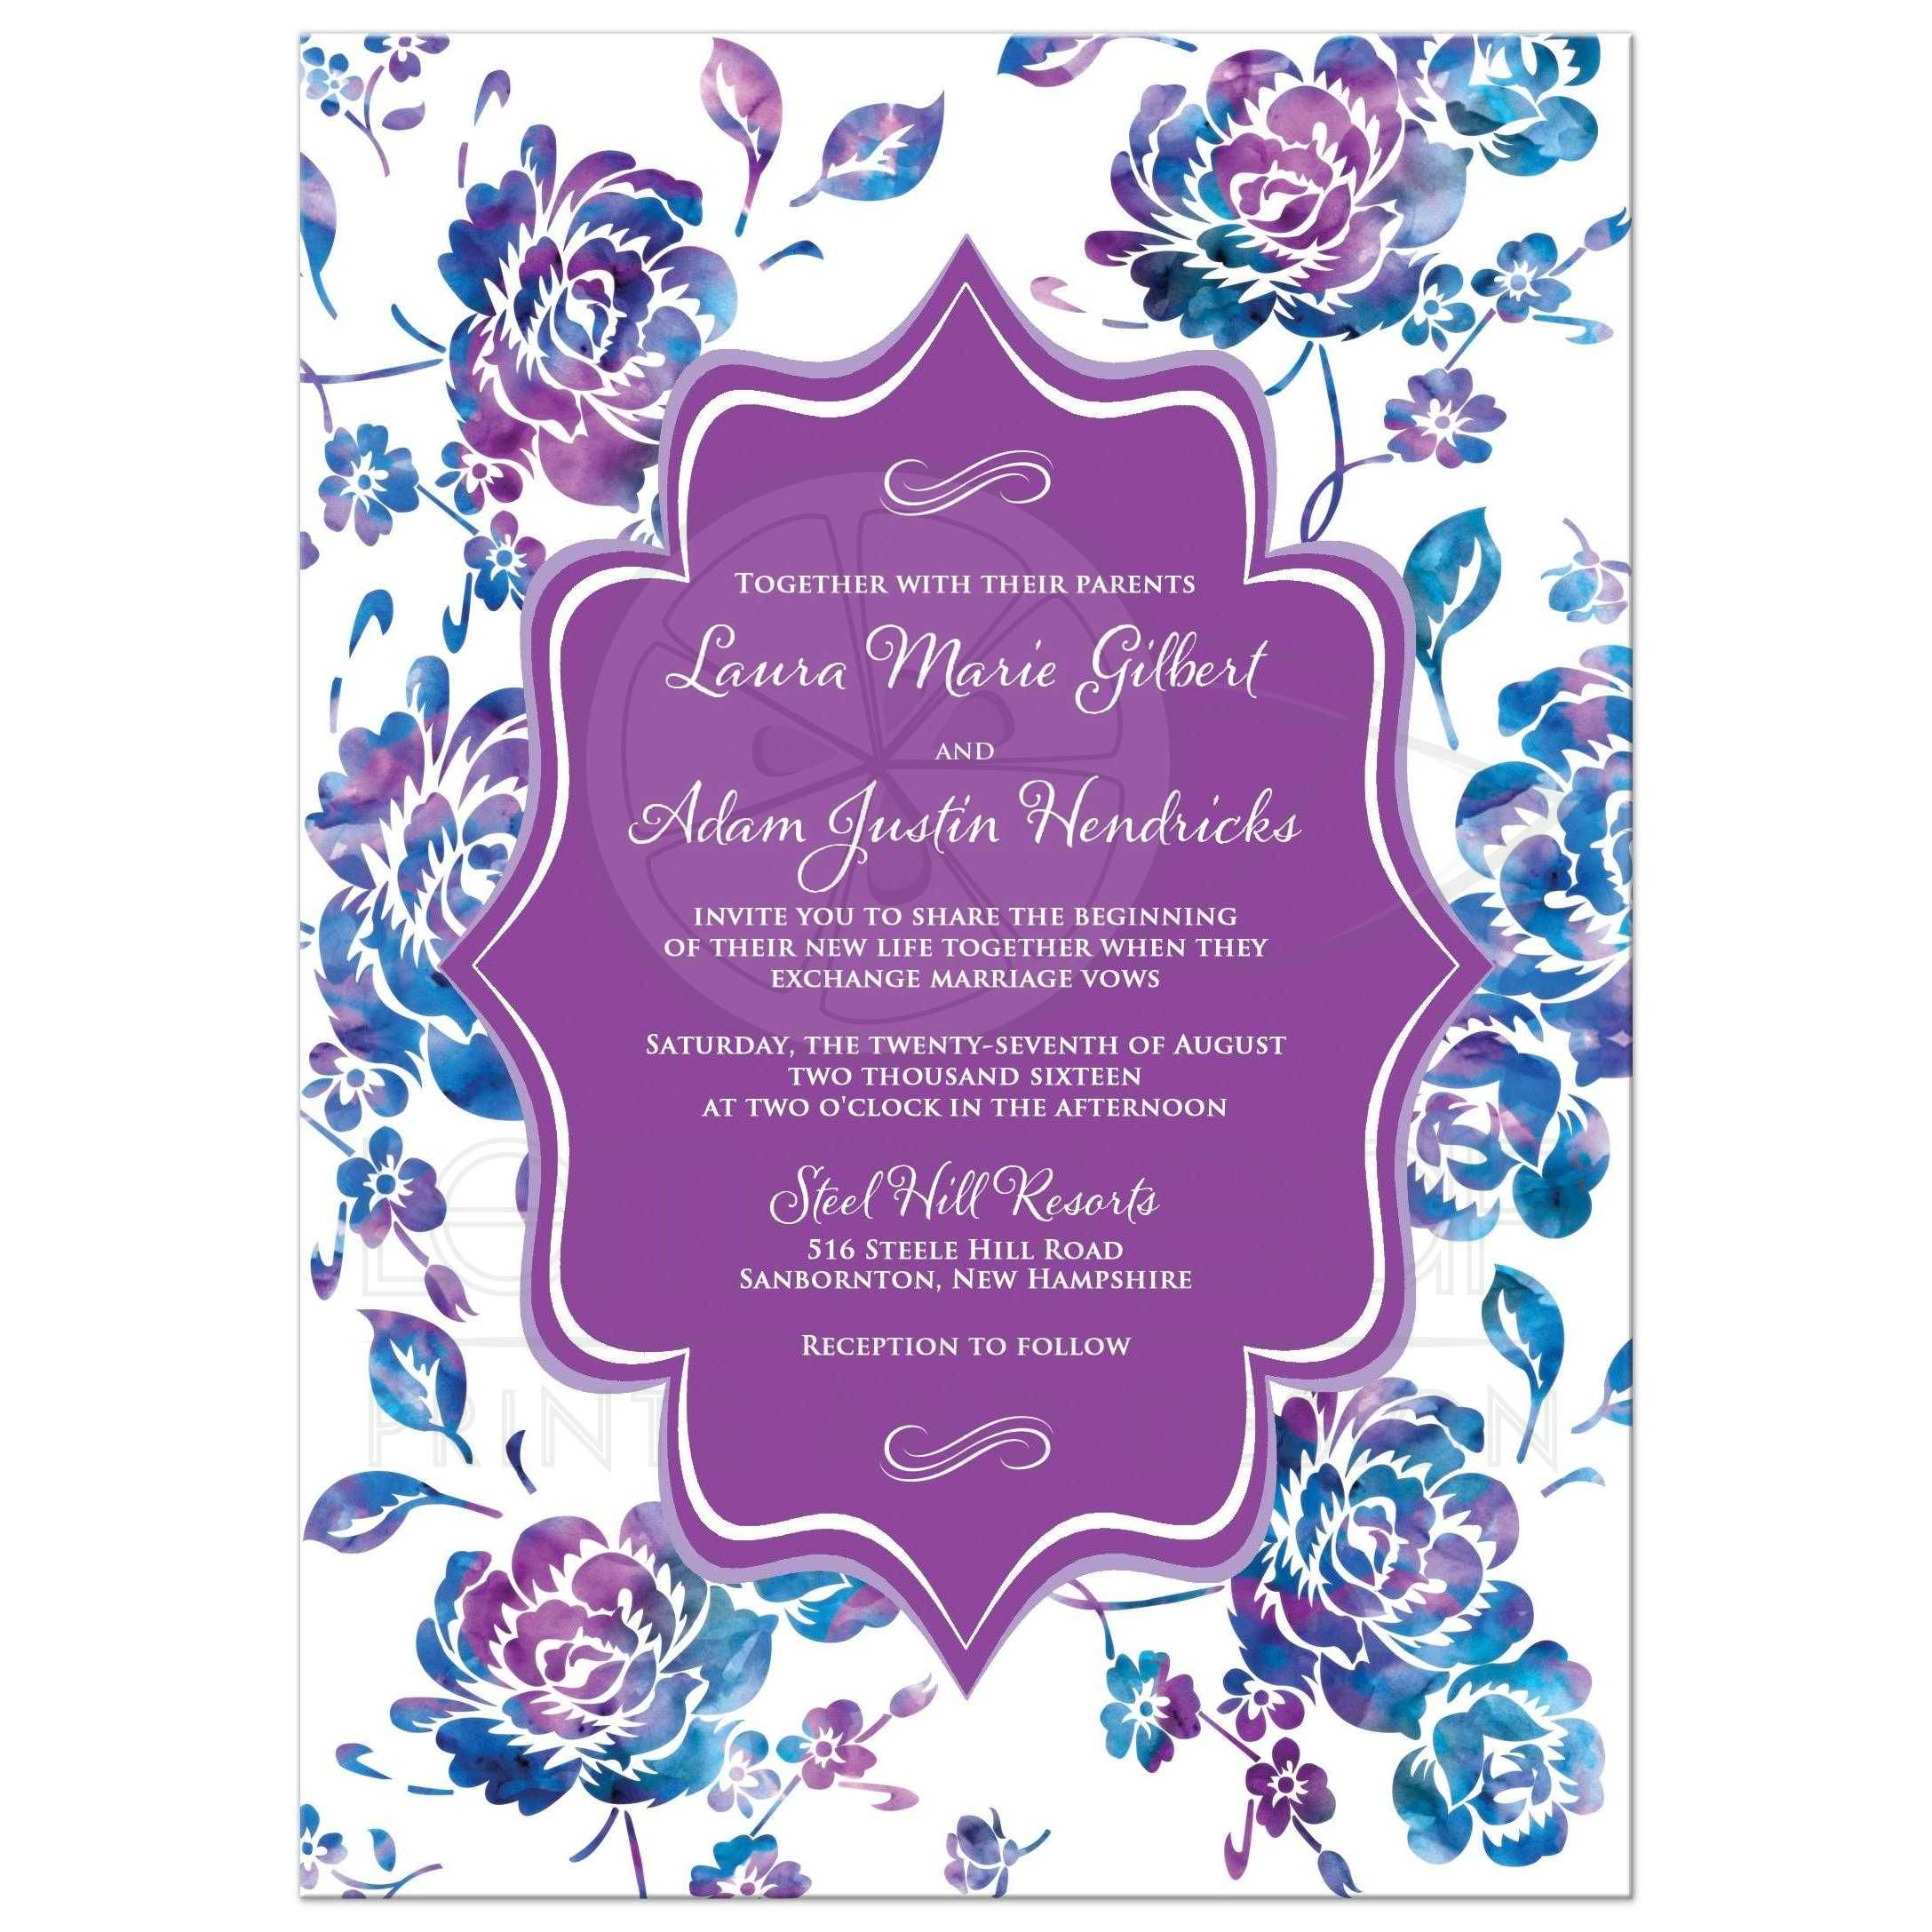 Wedding Invitation Watercolor Fl Purple Teal Turquoise Blue White Scrolls